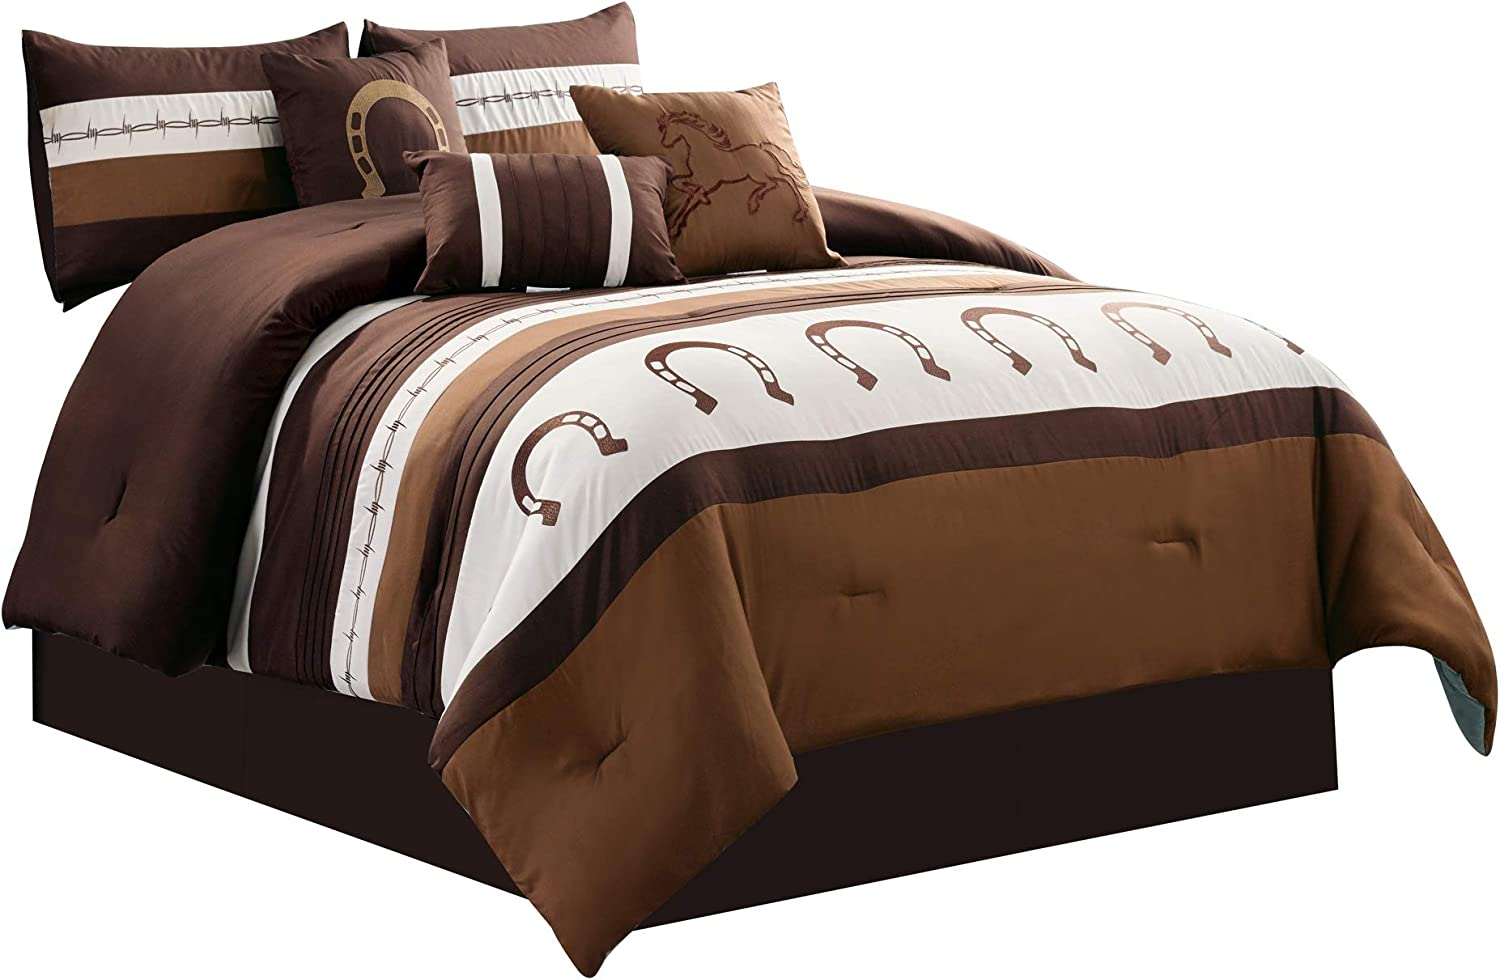 WPM WORLD PRODUCTS MART 7 Piece Rustic Comforter Set. Brown/Beige/Teal Horseshoe, Horse, Barb Wired Embroidered Bed in a Bag Western Cowboy Bedding Set- JENA (Coffee, Queen)